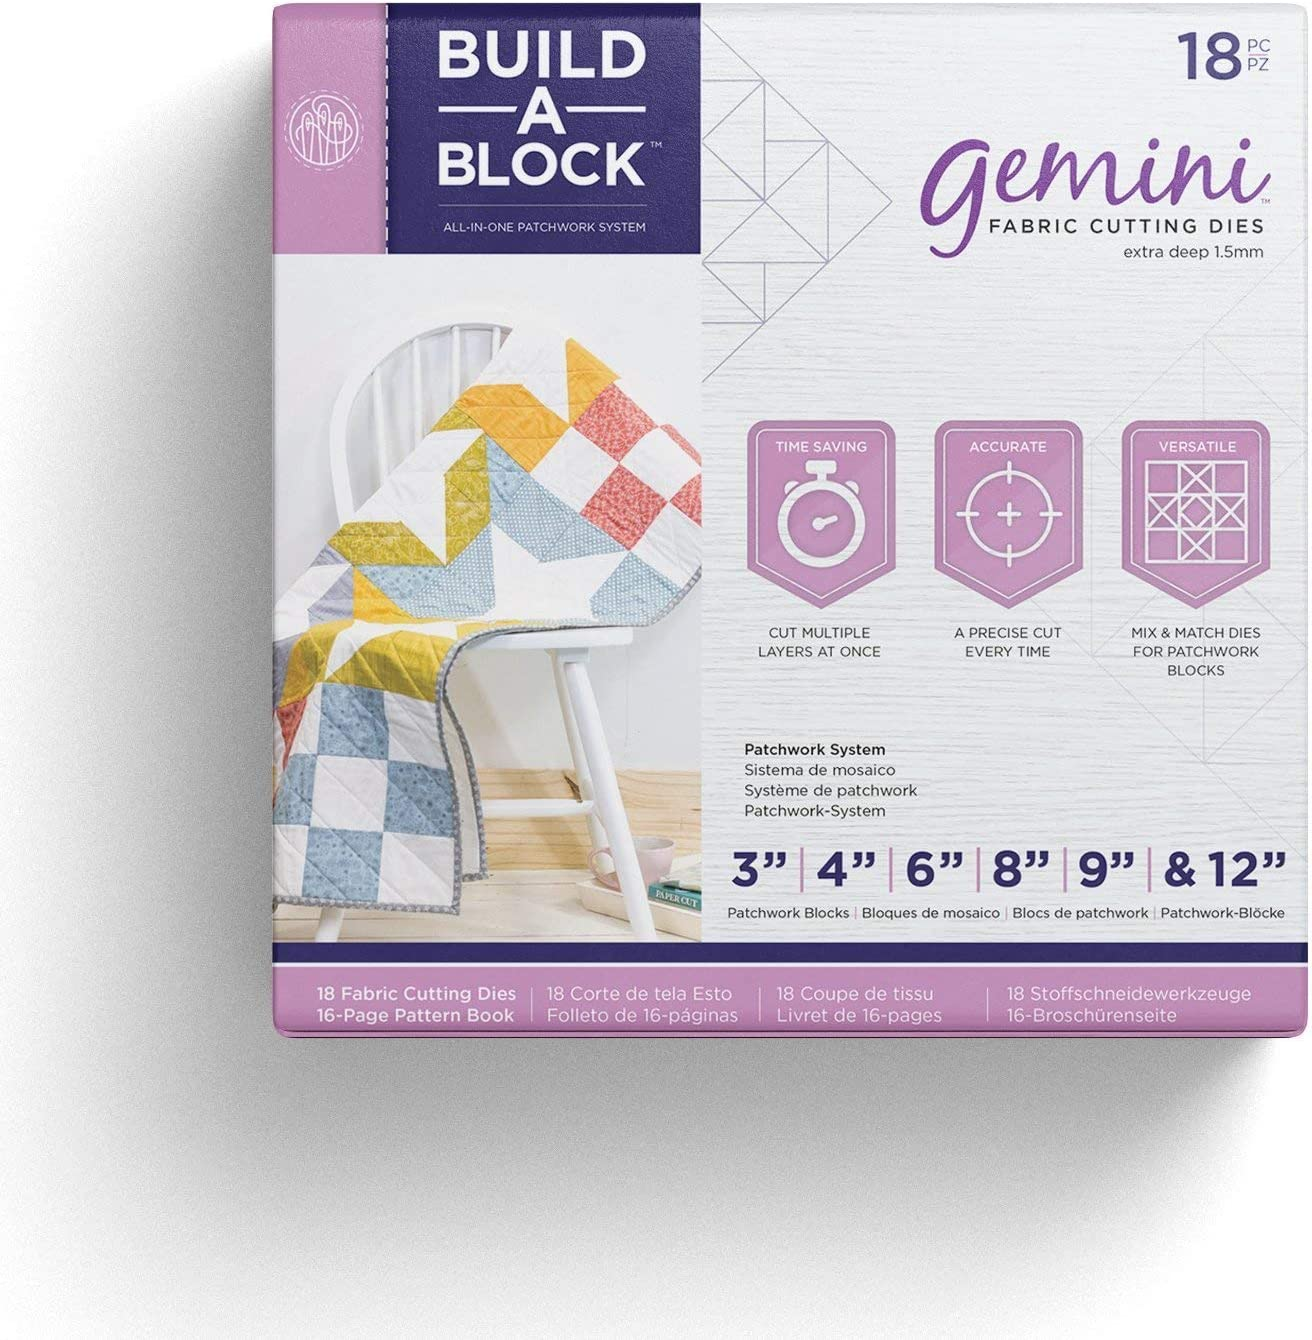 Silver Threaders GEM MD-BAB Bulld Gemini Patchwork System Build-a-Block Textile /& Fabric Patch Work Quilting Set